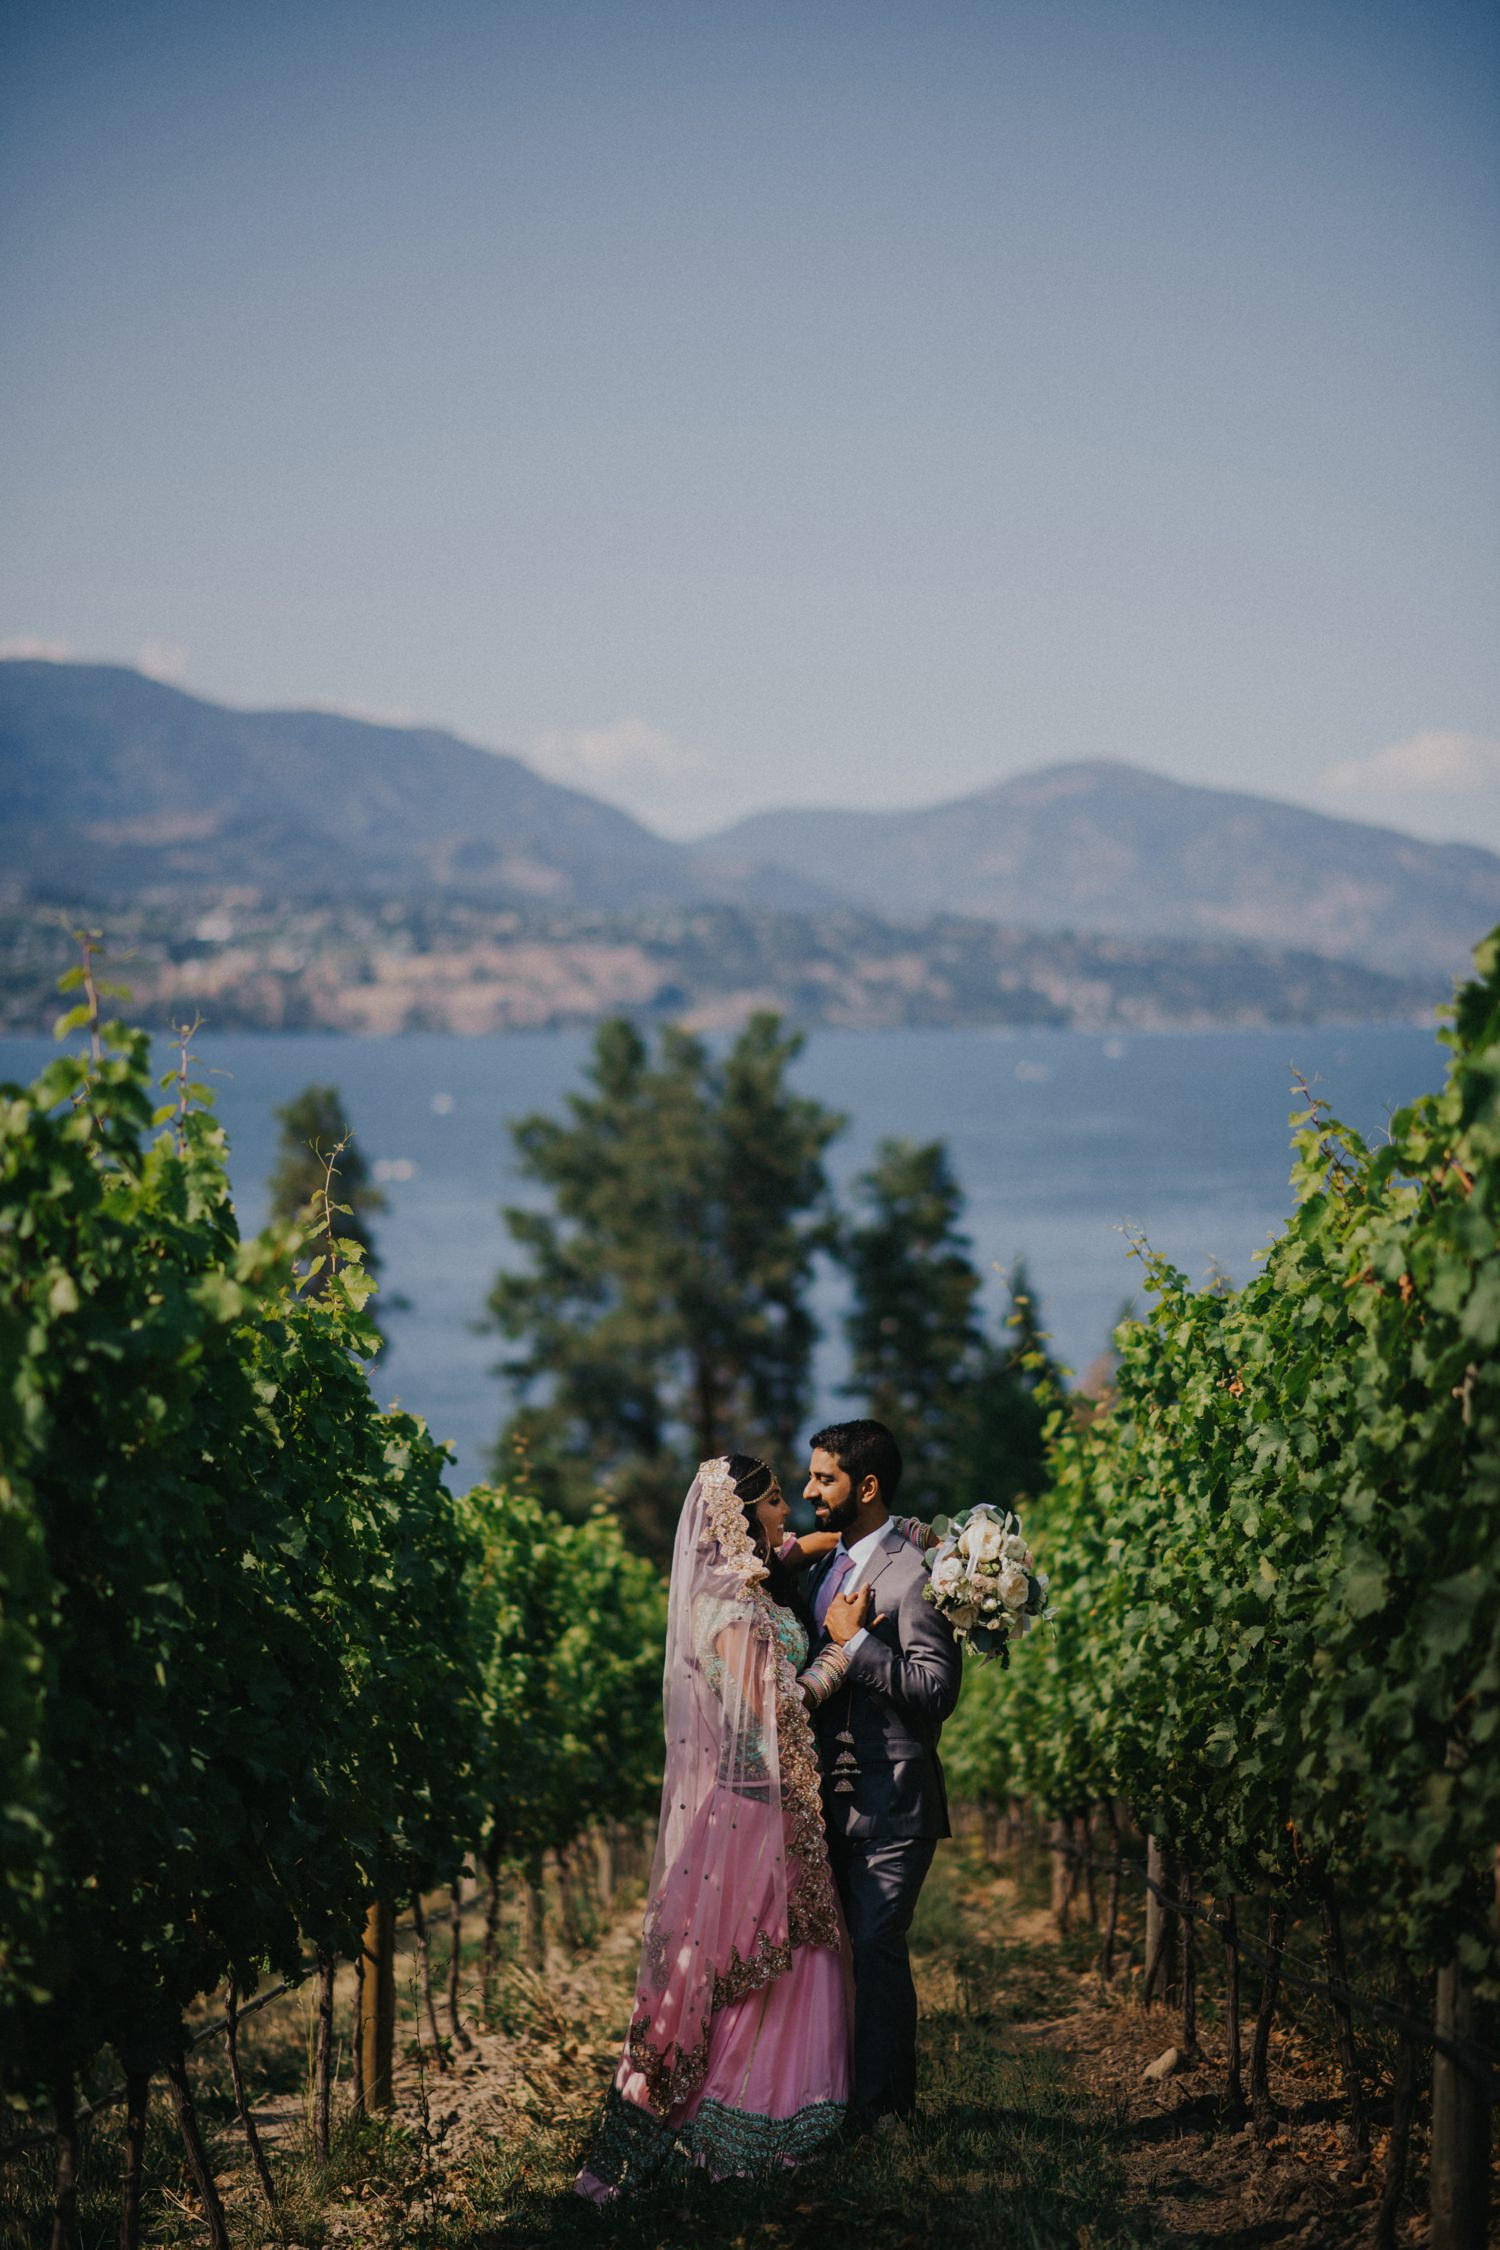 Wedding Photography at Cedar Creek Winery in Kelowna